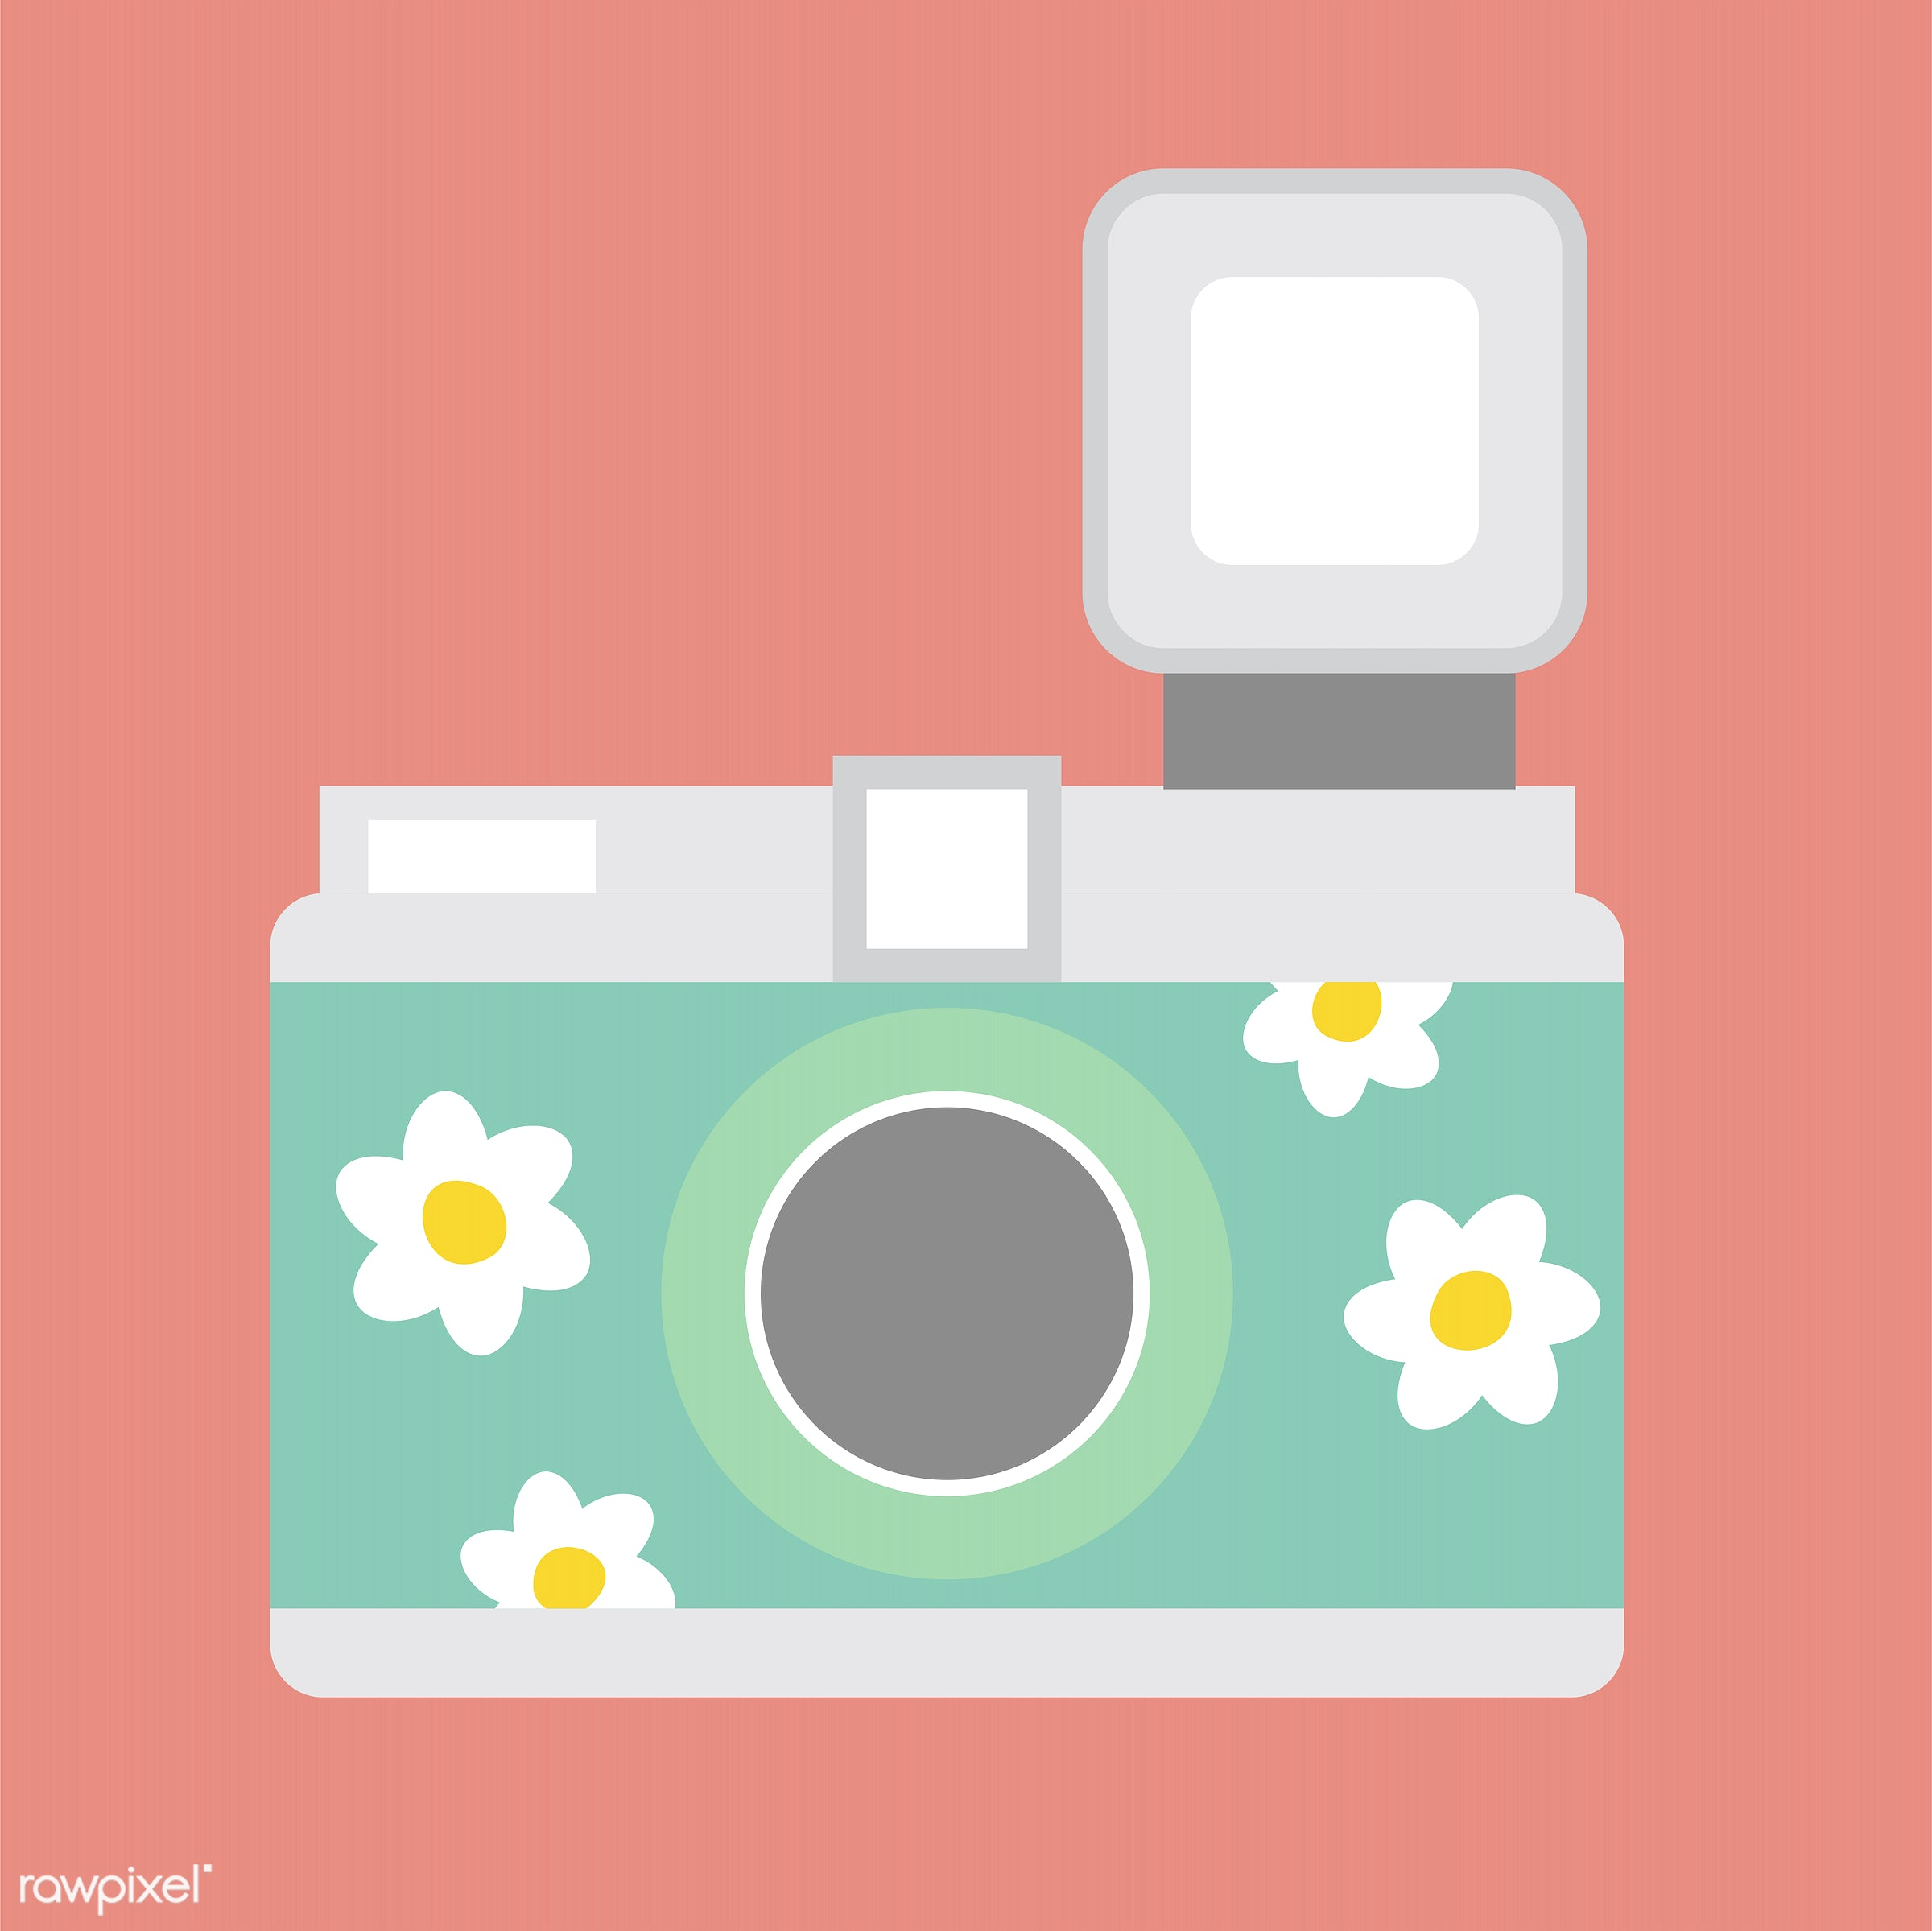 vector, illustration, graphic, cute, sweet, girly, pastel, camera, analog, isolated, photograph, photography